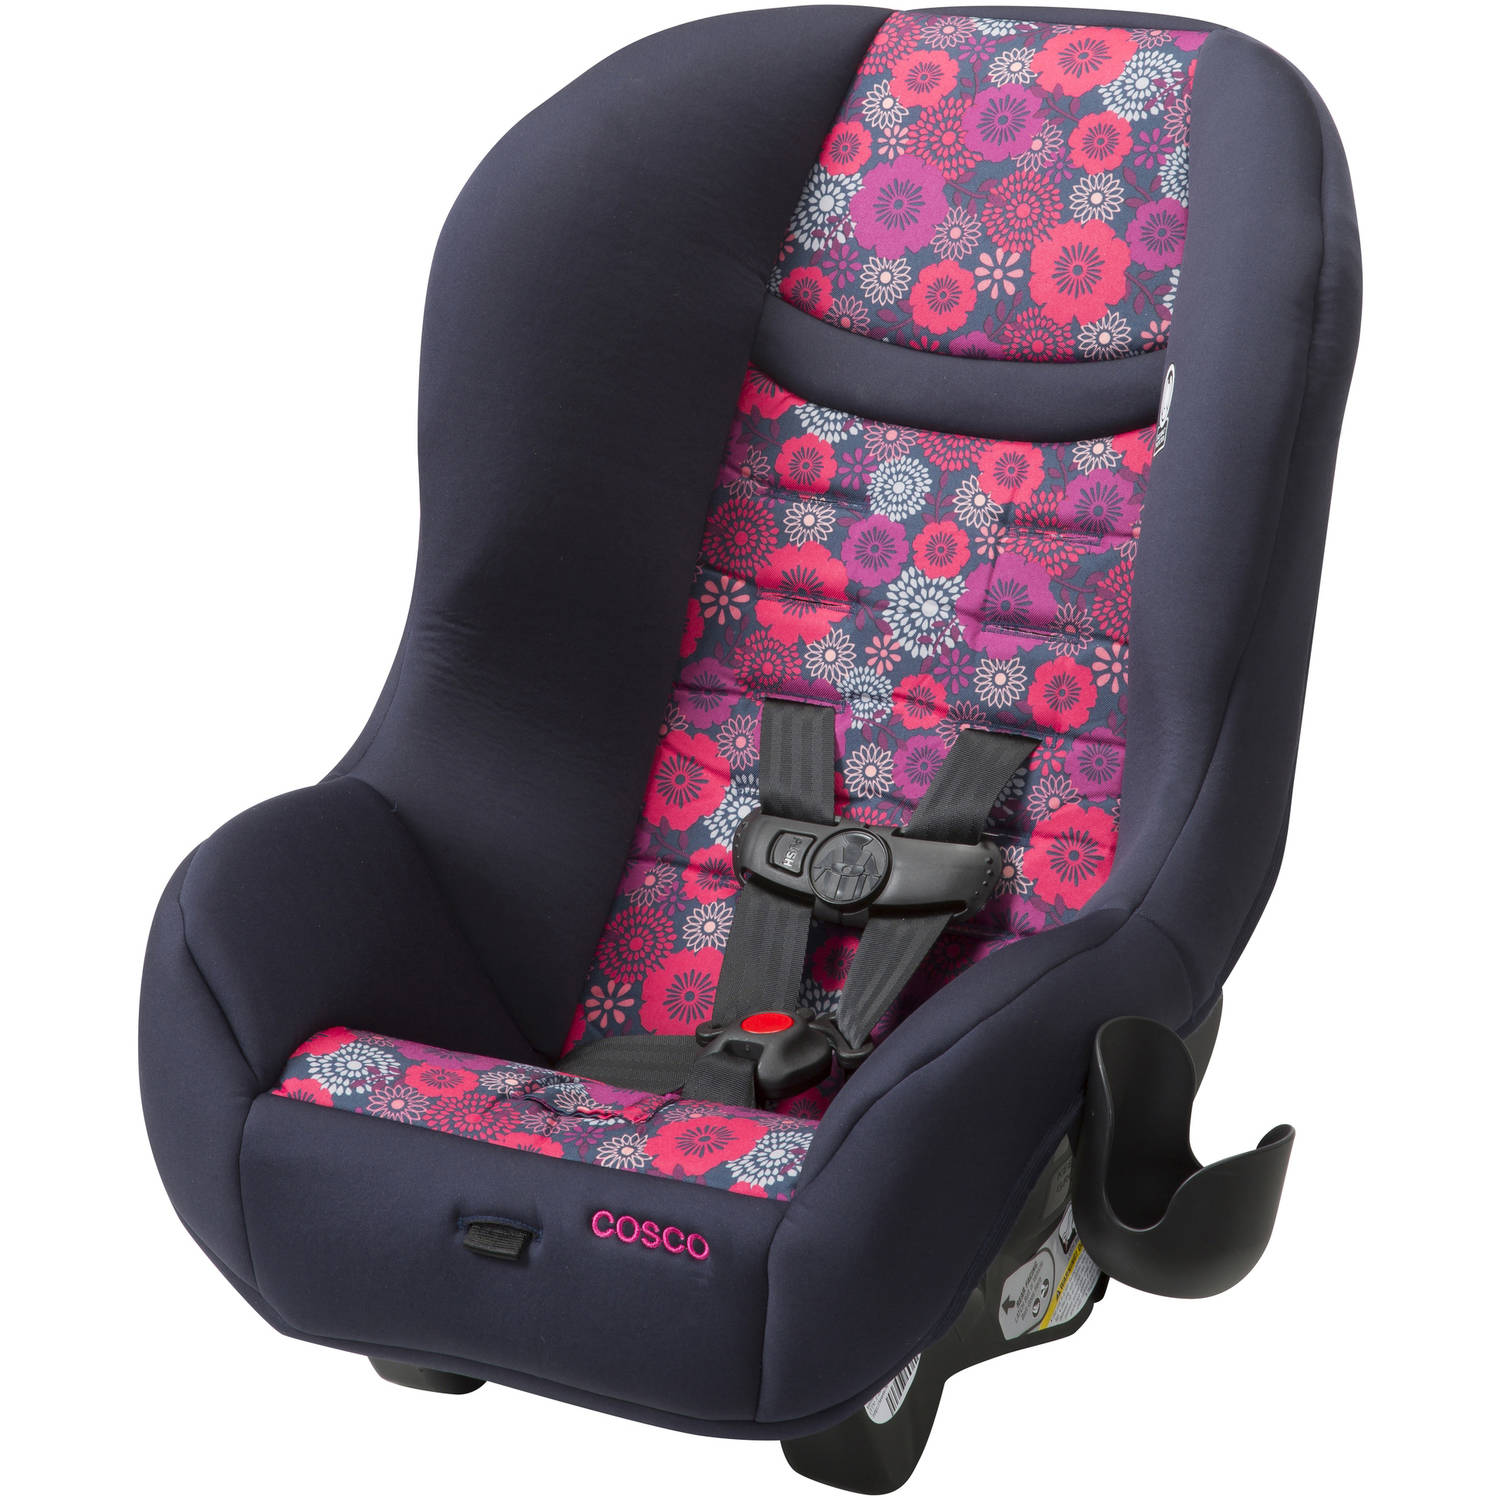 cosco car seat buckle replacement. Black Bedroom Furniture Sets. Home Design Ideas